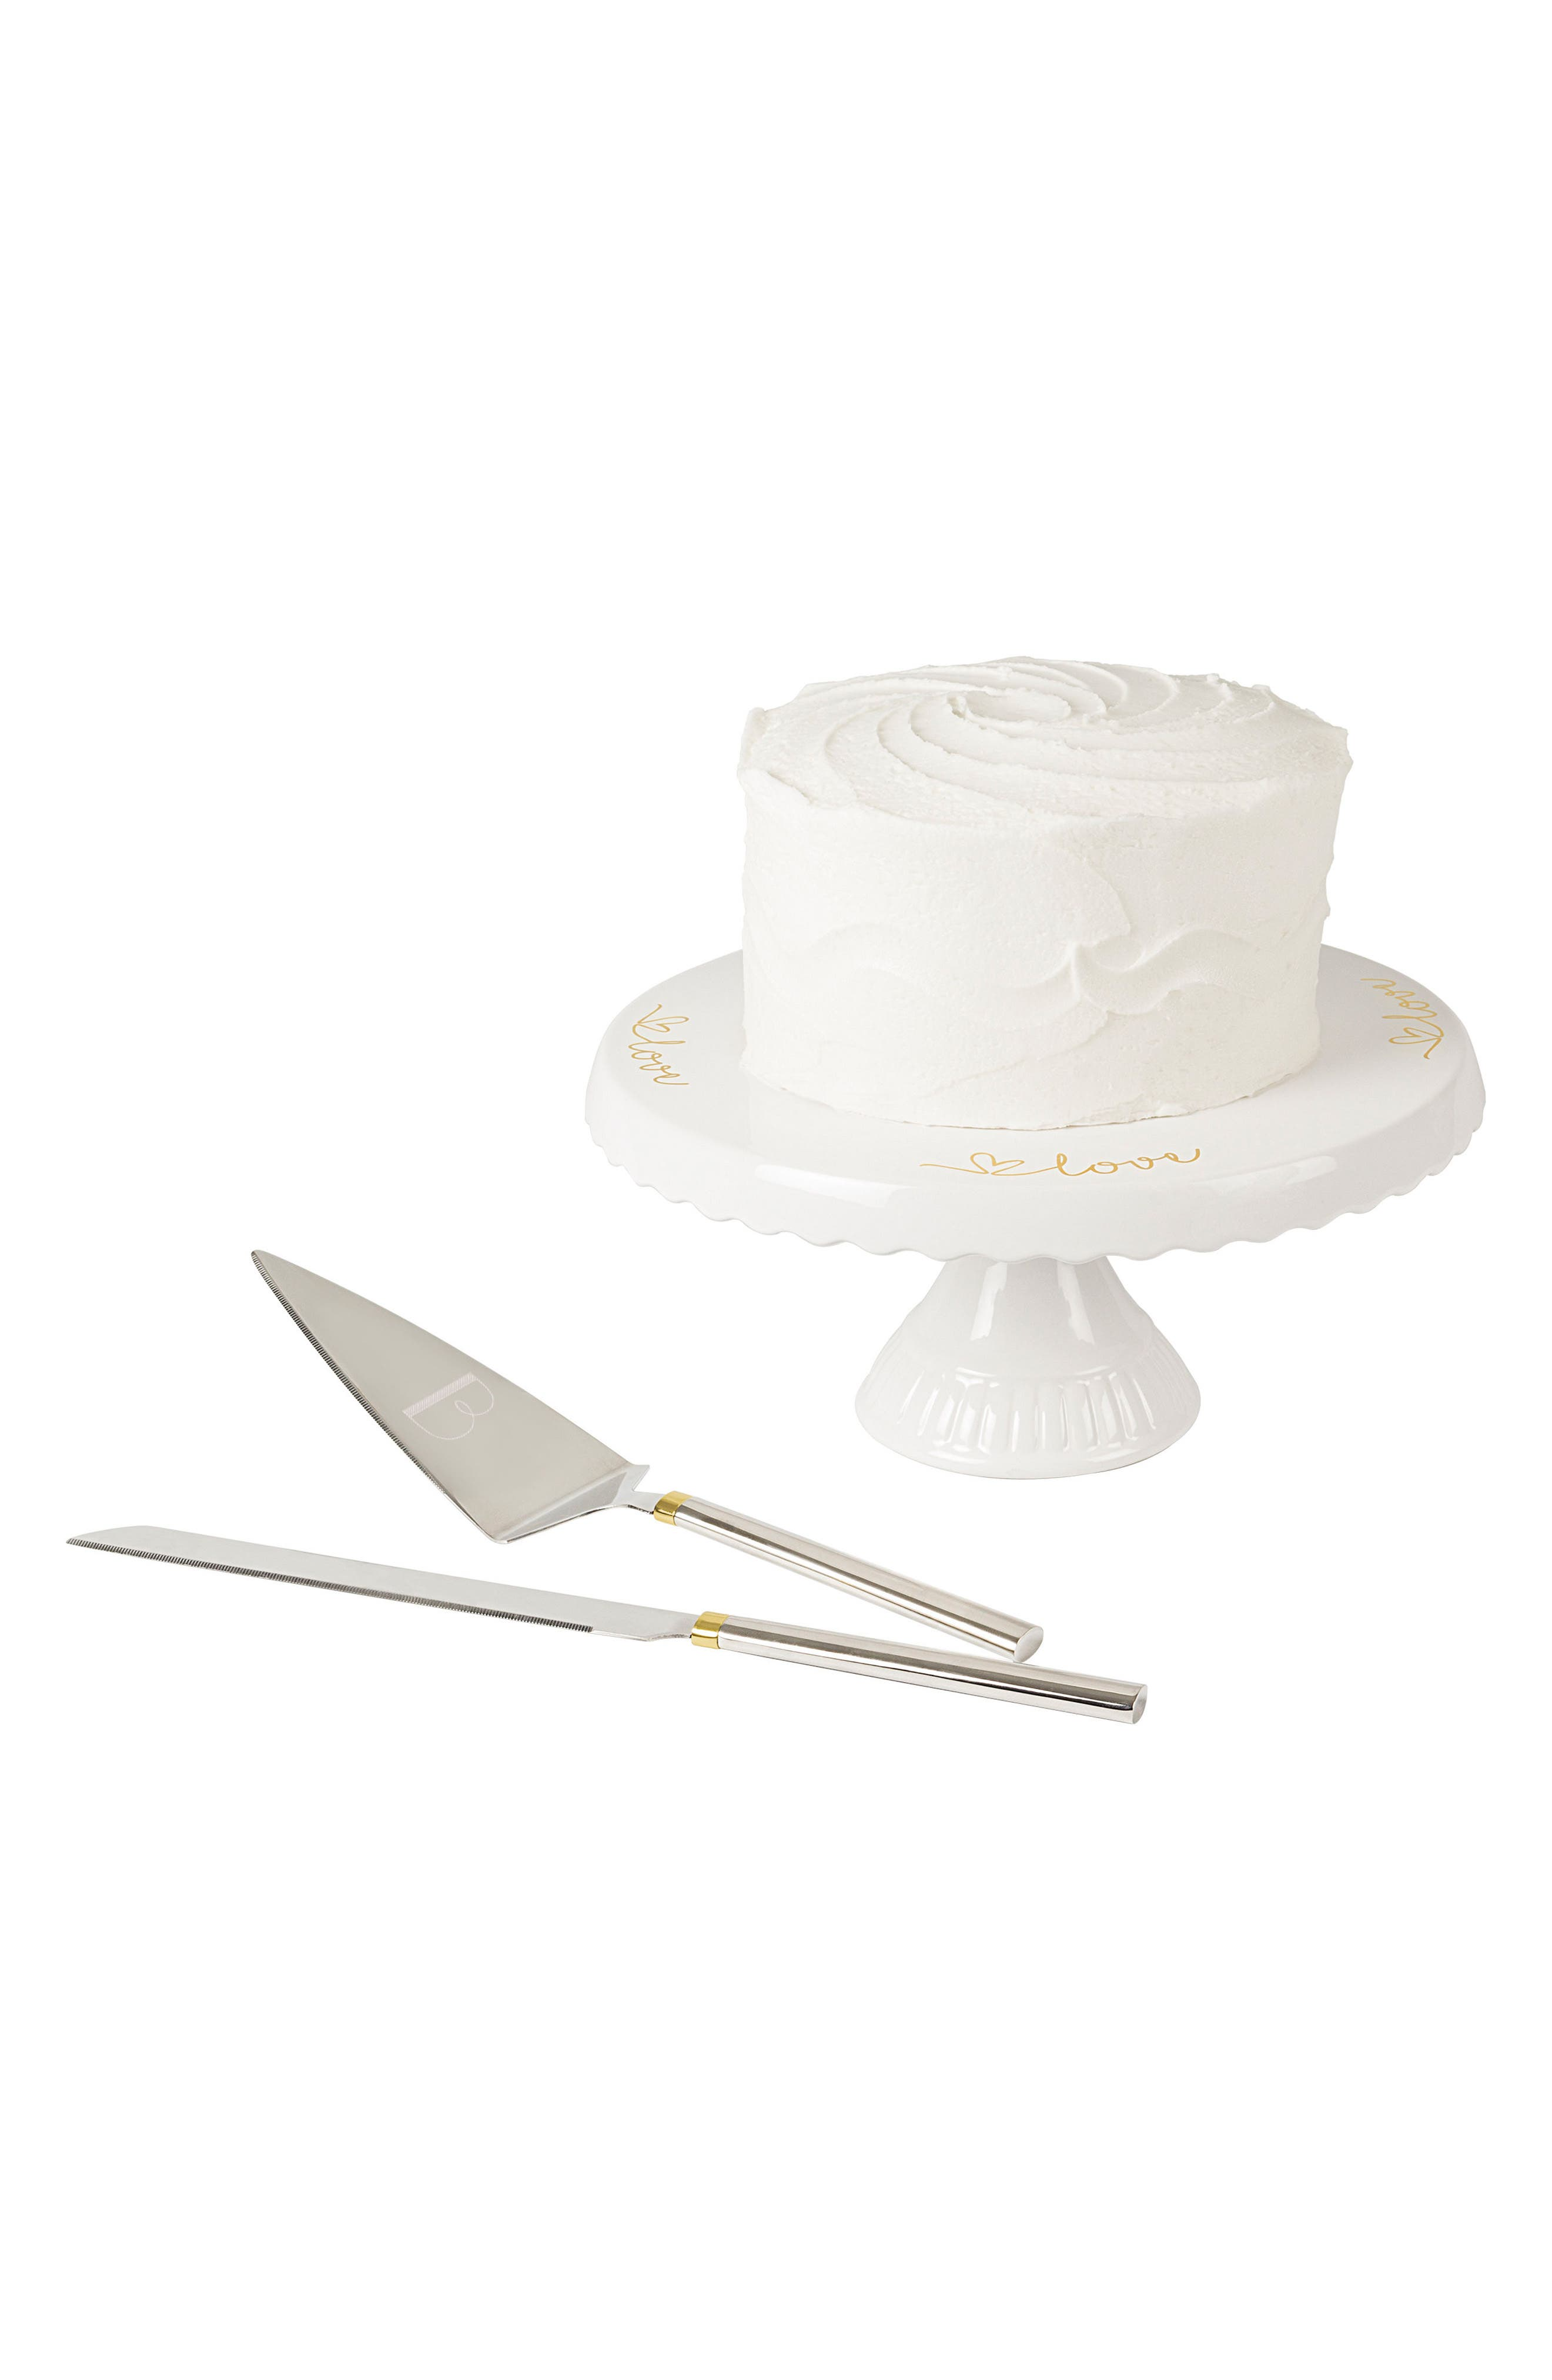 Love Monogram Cake Stand & Server Set,                             Main thumbnail 3, color,